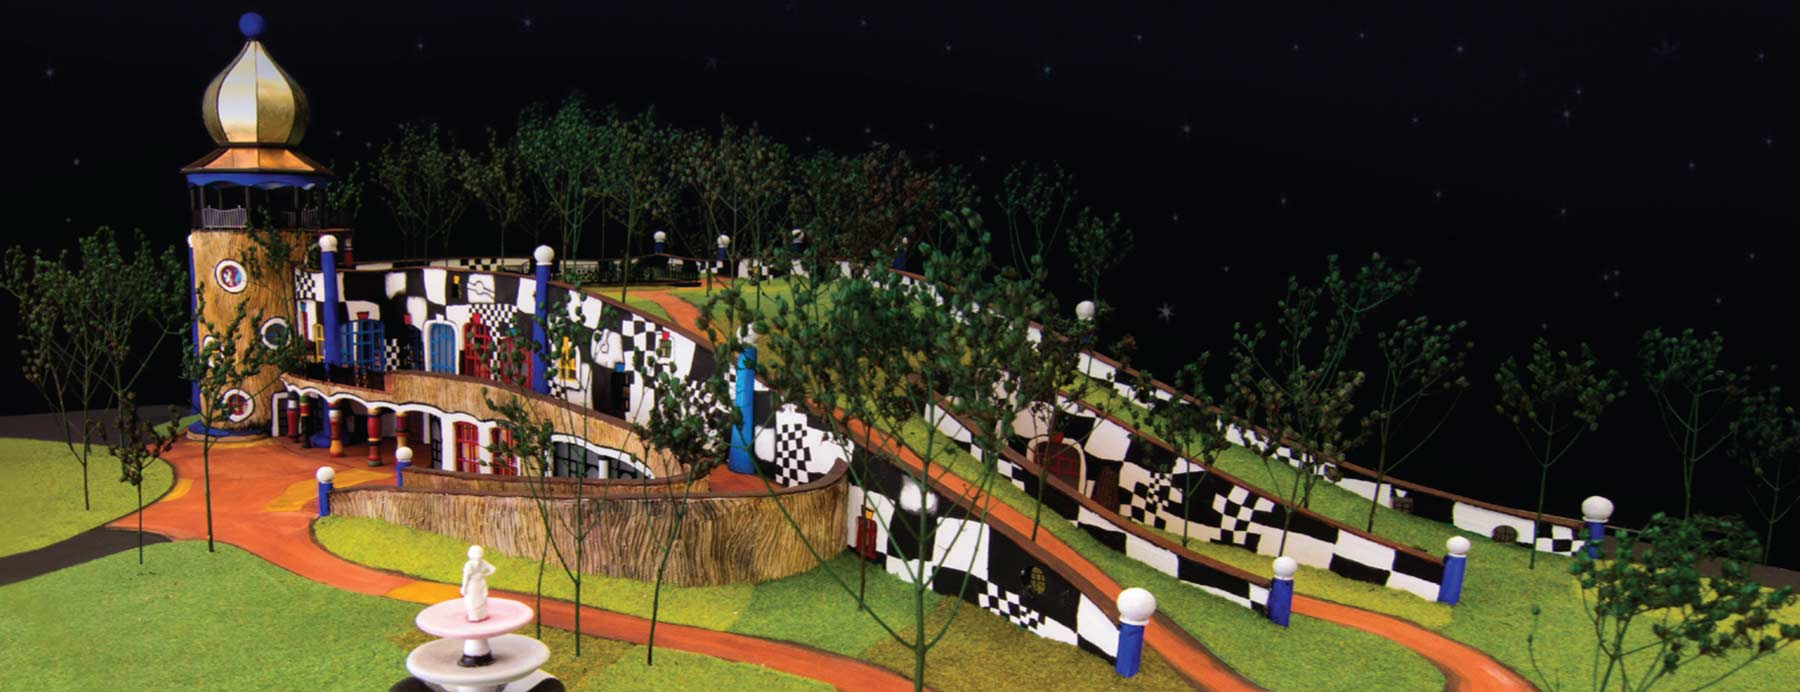 Hundertwasser Art Centre with Wairau Maori Art Gallery model